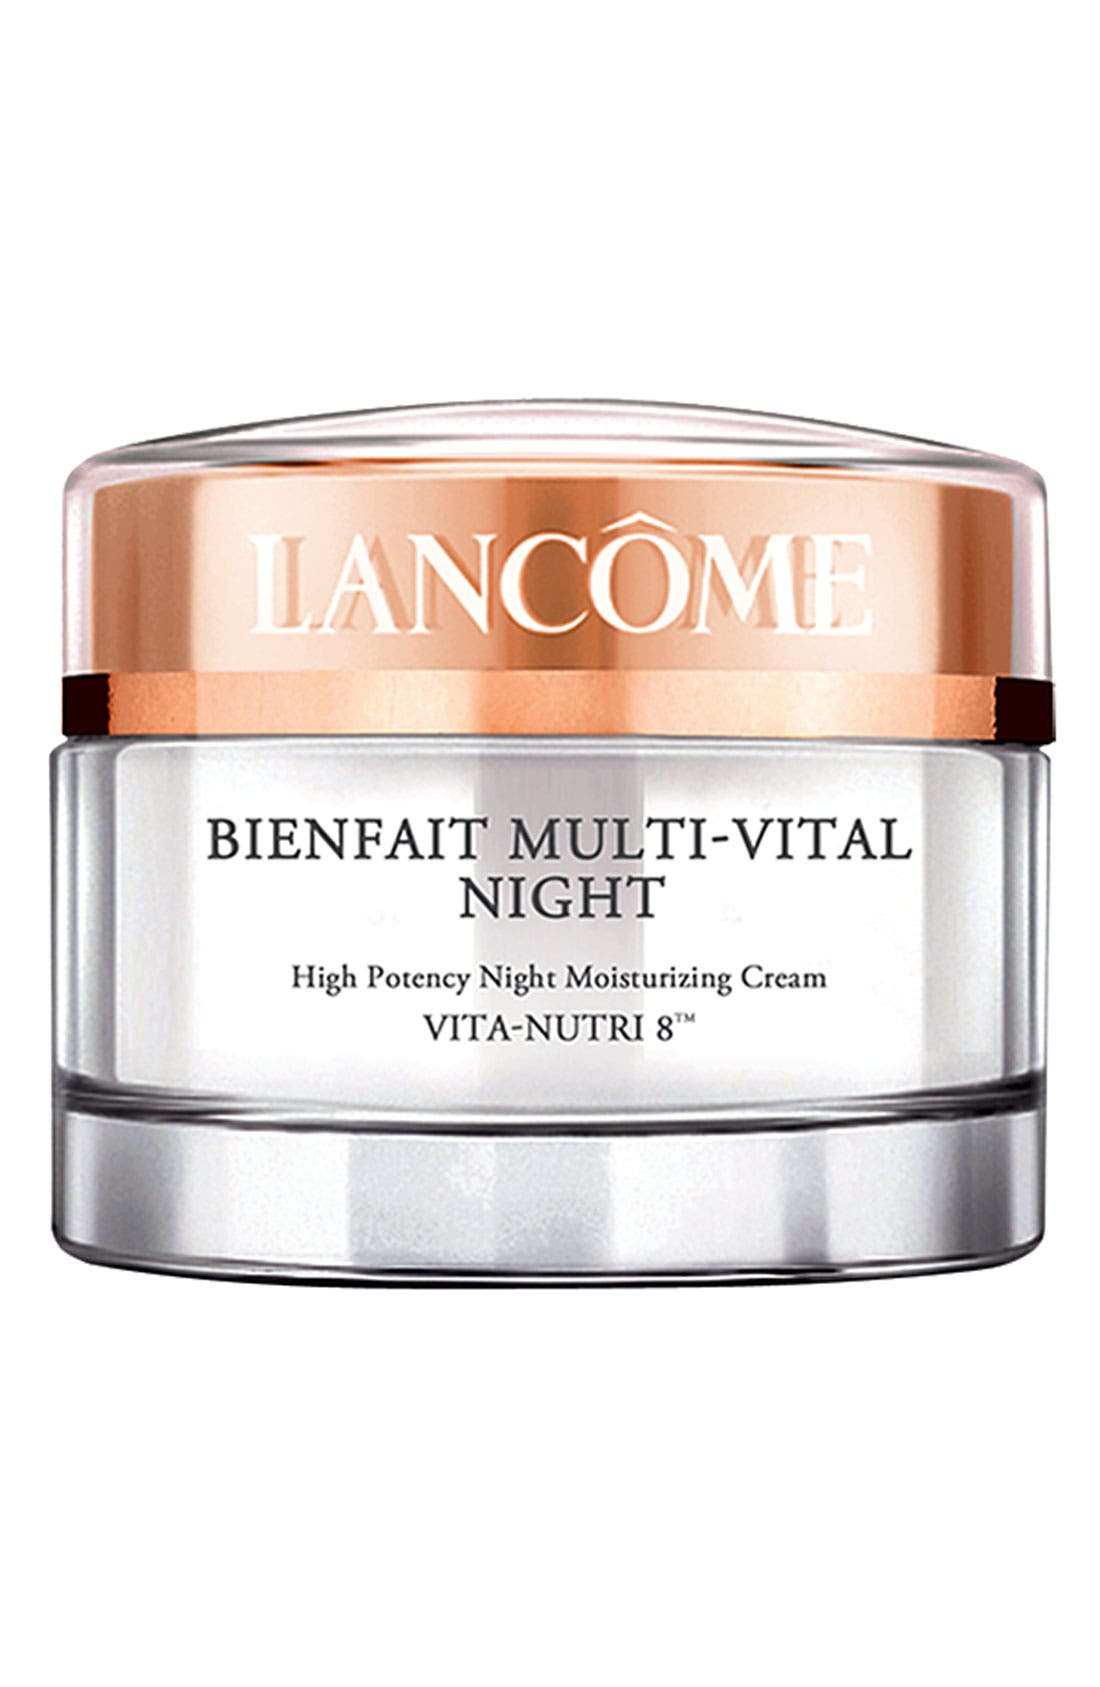 Lancome Skincare Beauty Fragrance And Personal Care